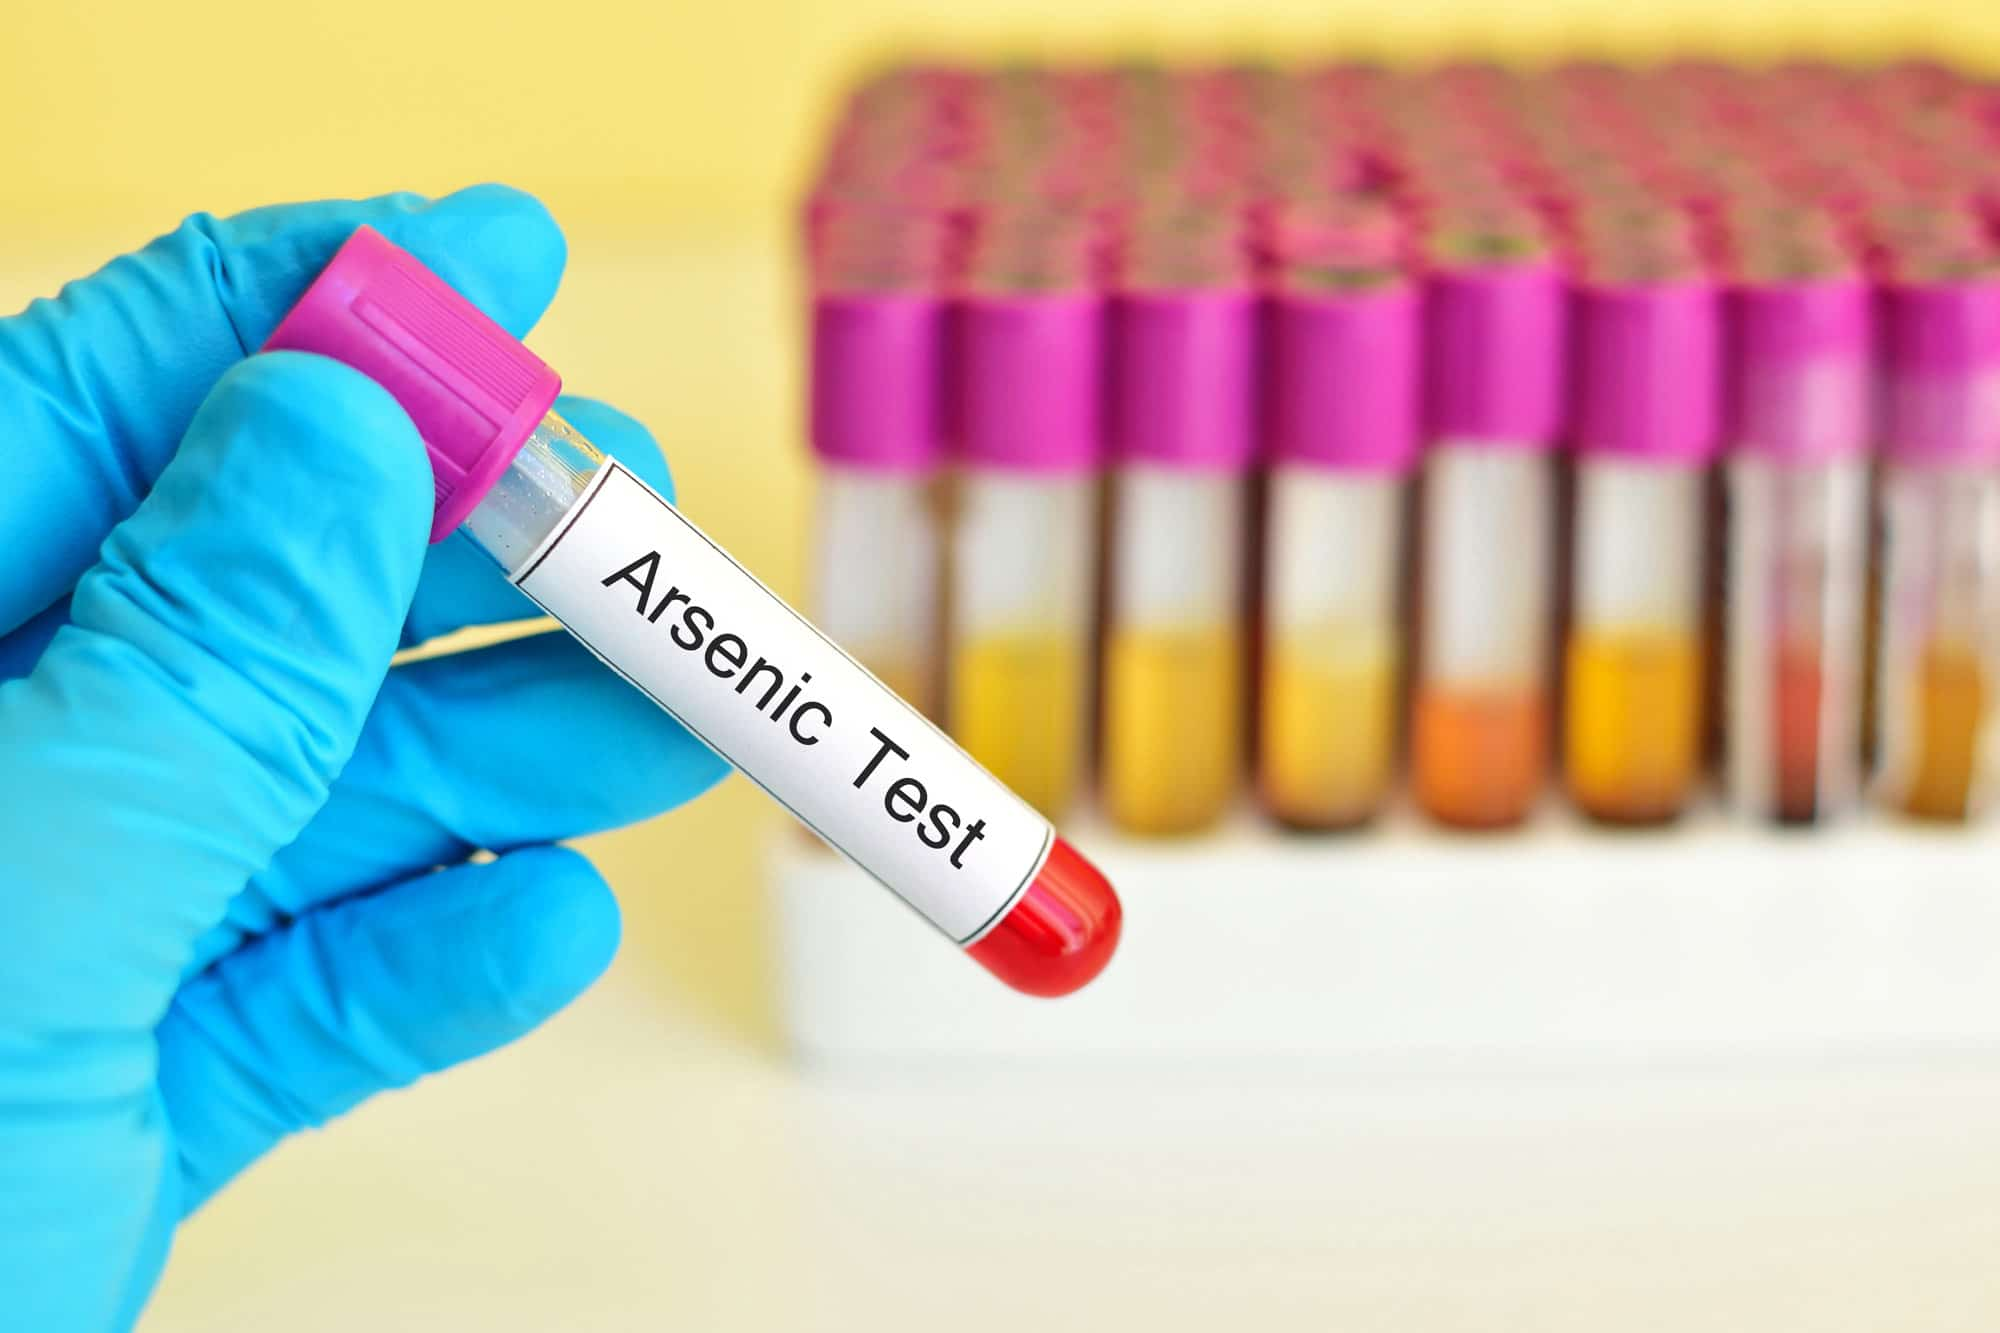 arsenic-test